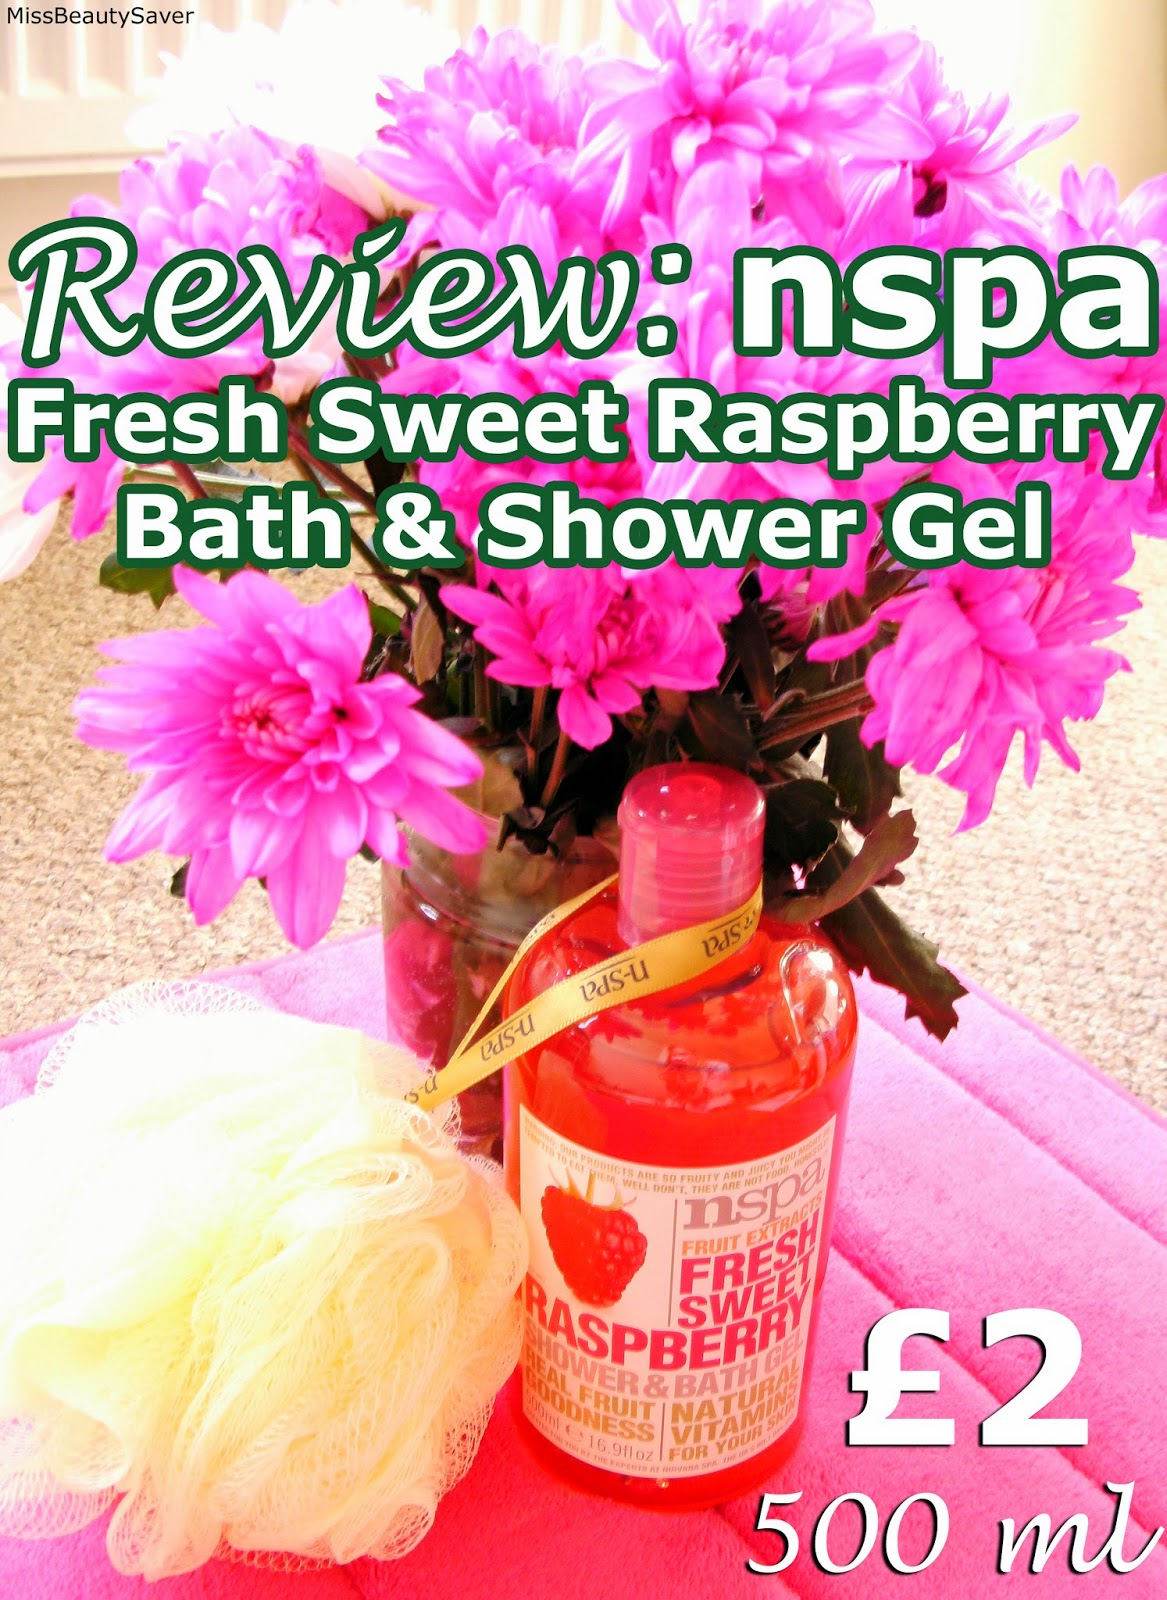 Review: Nspa Fruit Extracts Shower and Bath Gel in Fresh Sweet Raspberry